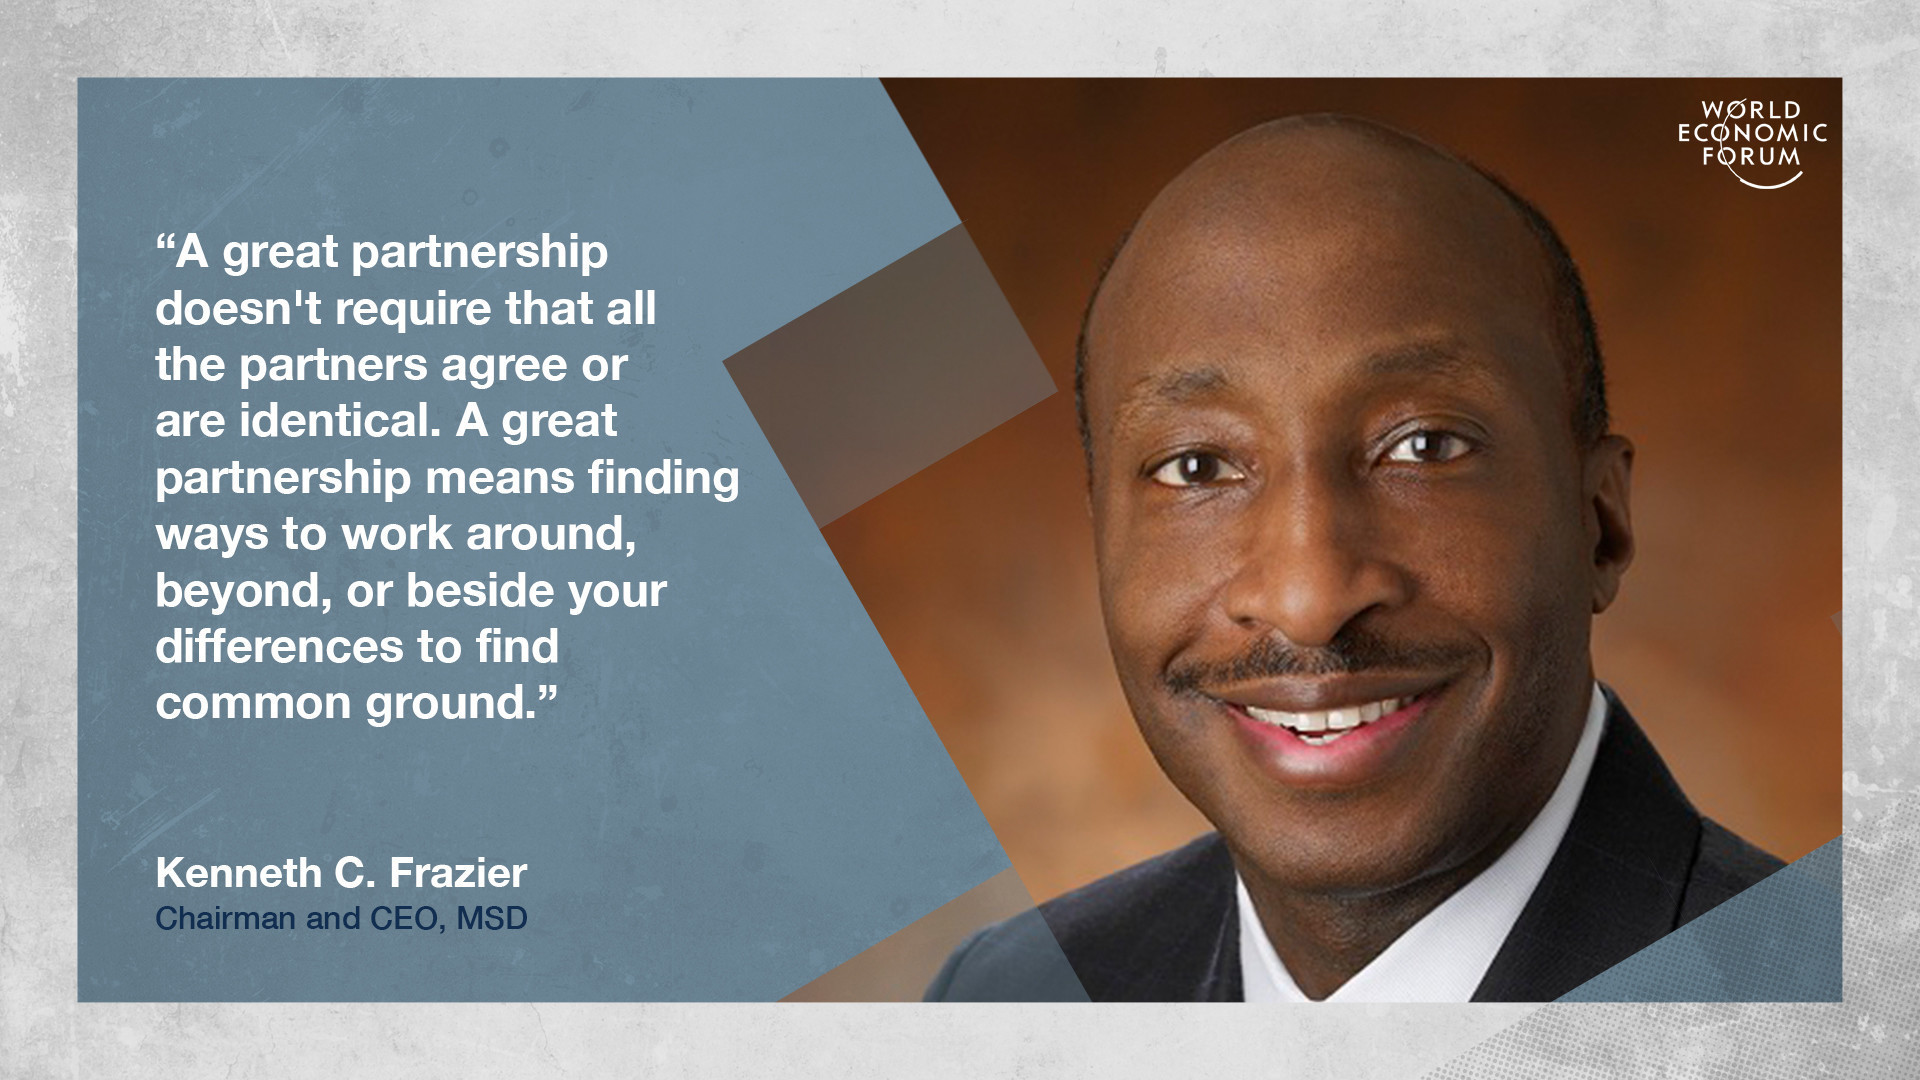 Kenneth C. Frazier on working together beyond differences